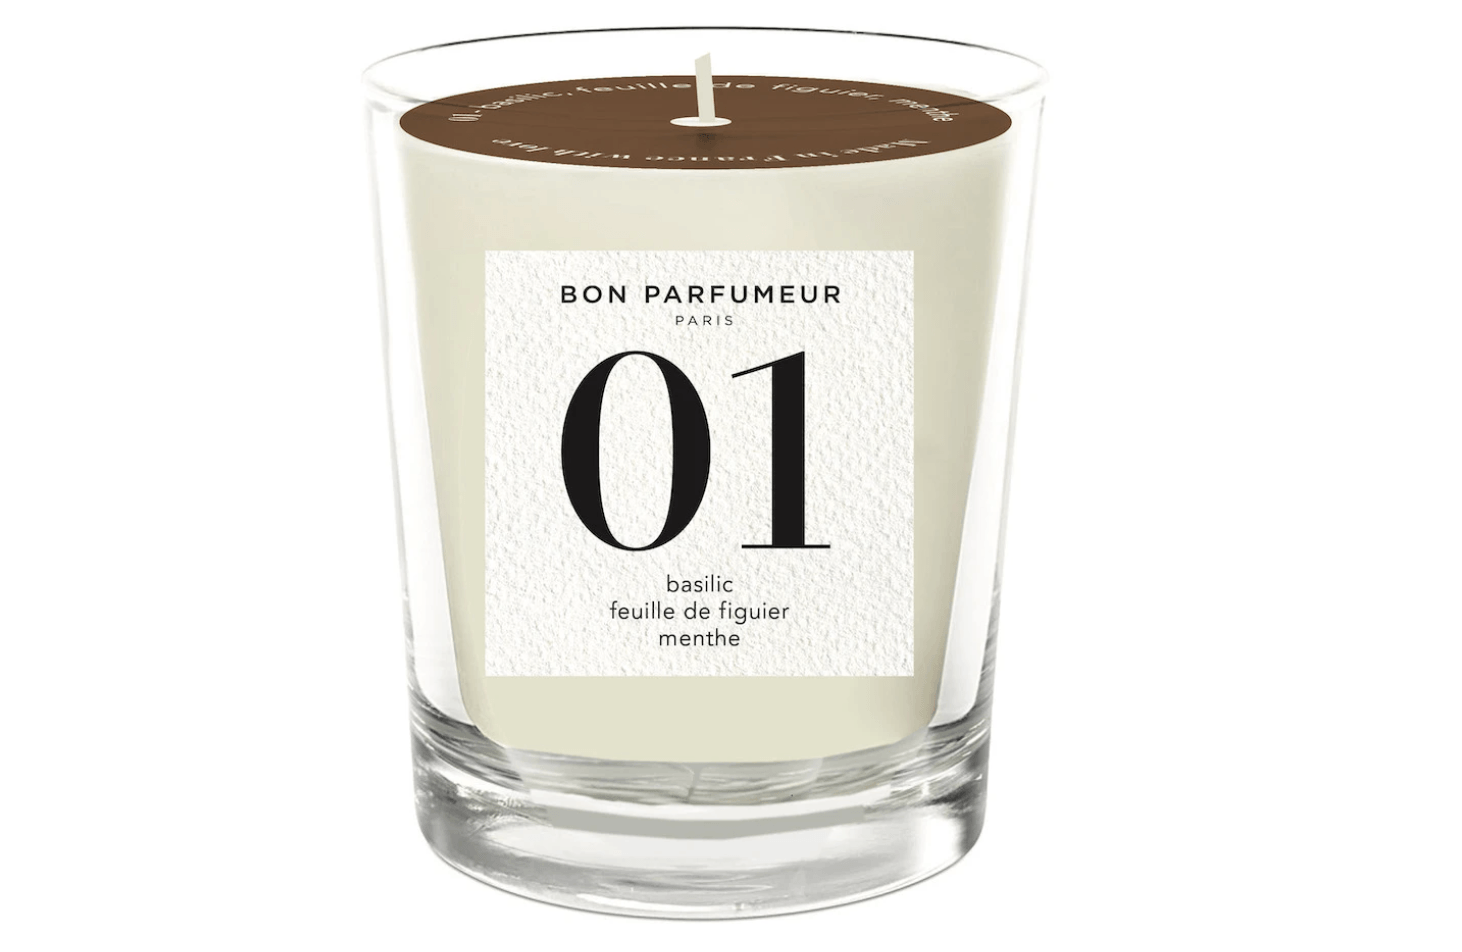 BON PARFUMEUR Candle 01: basil, fig leaves, mint